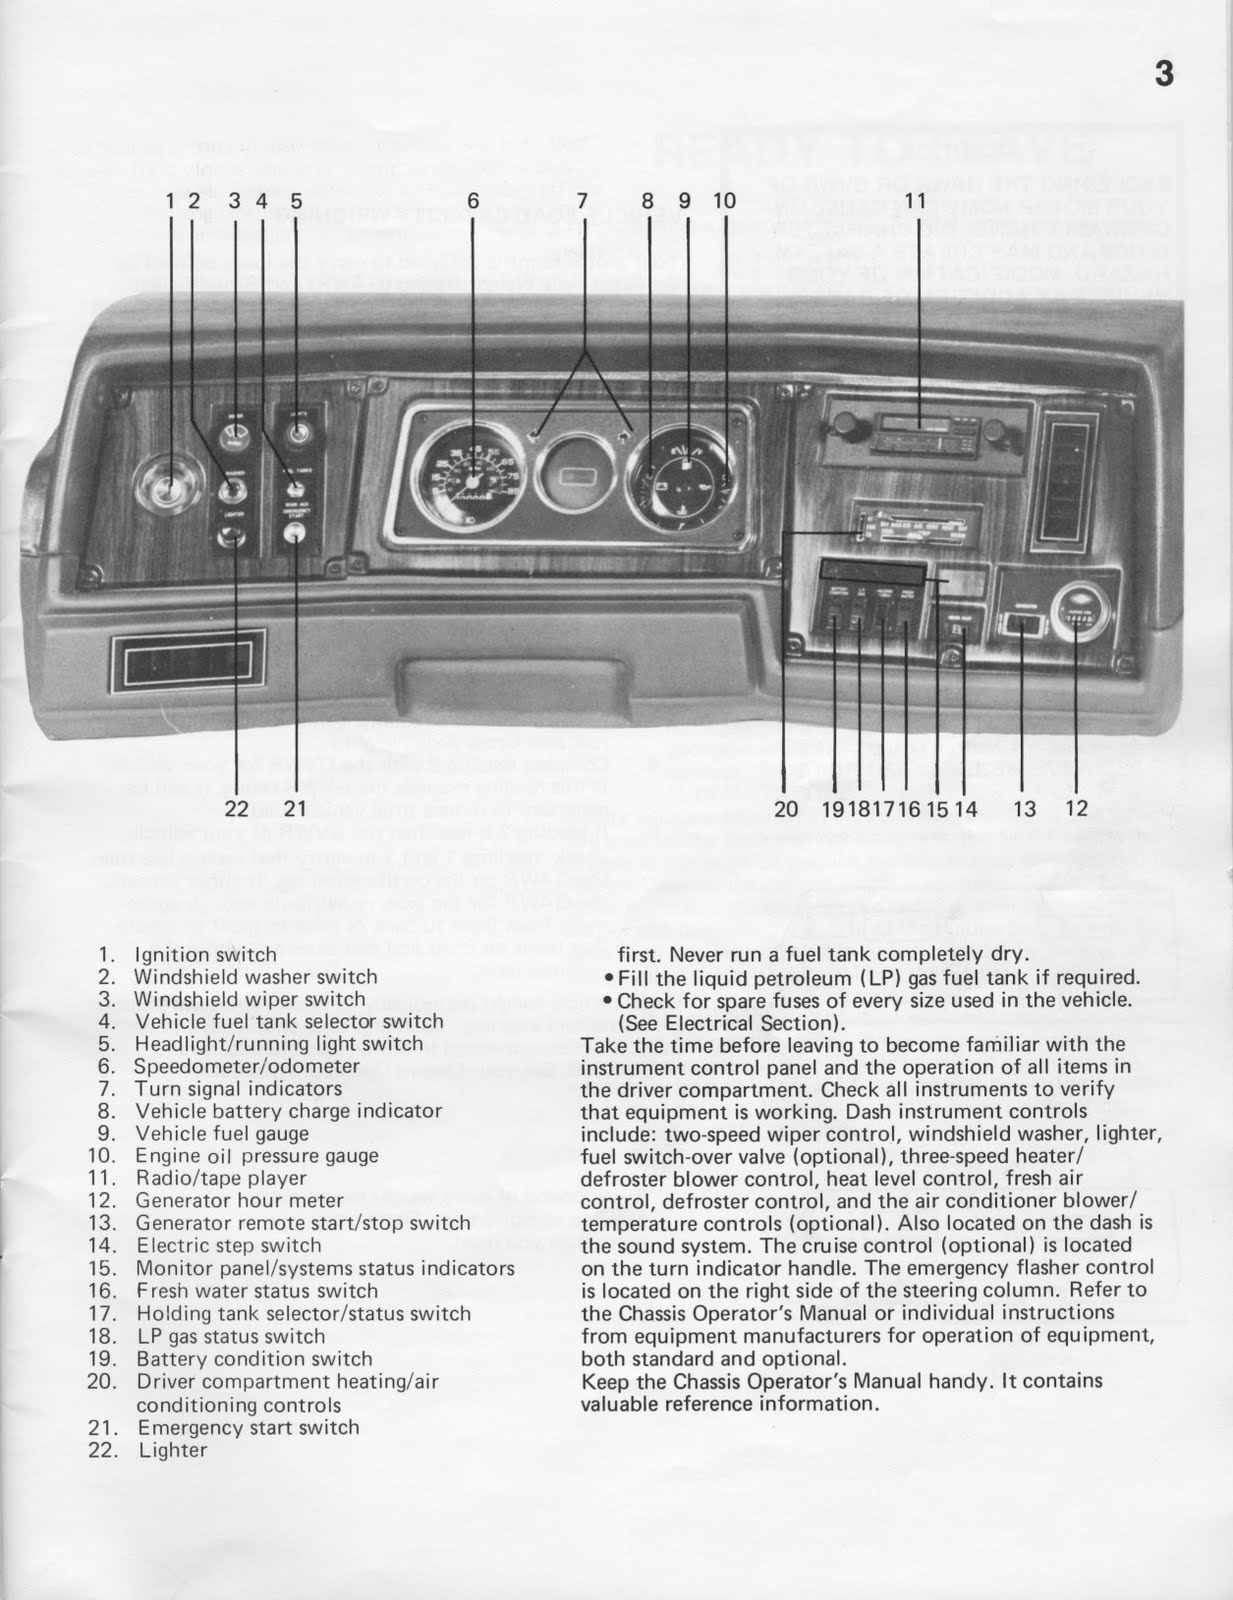 1983 Fleetwood Pace Arrow Owners Manual